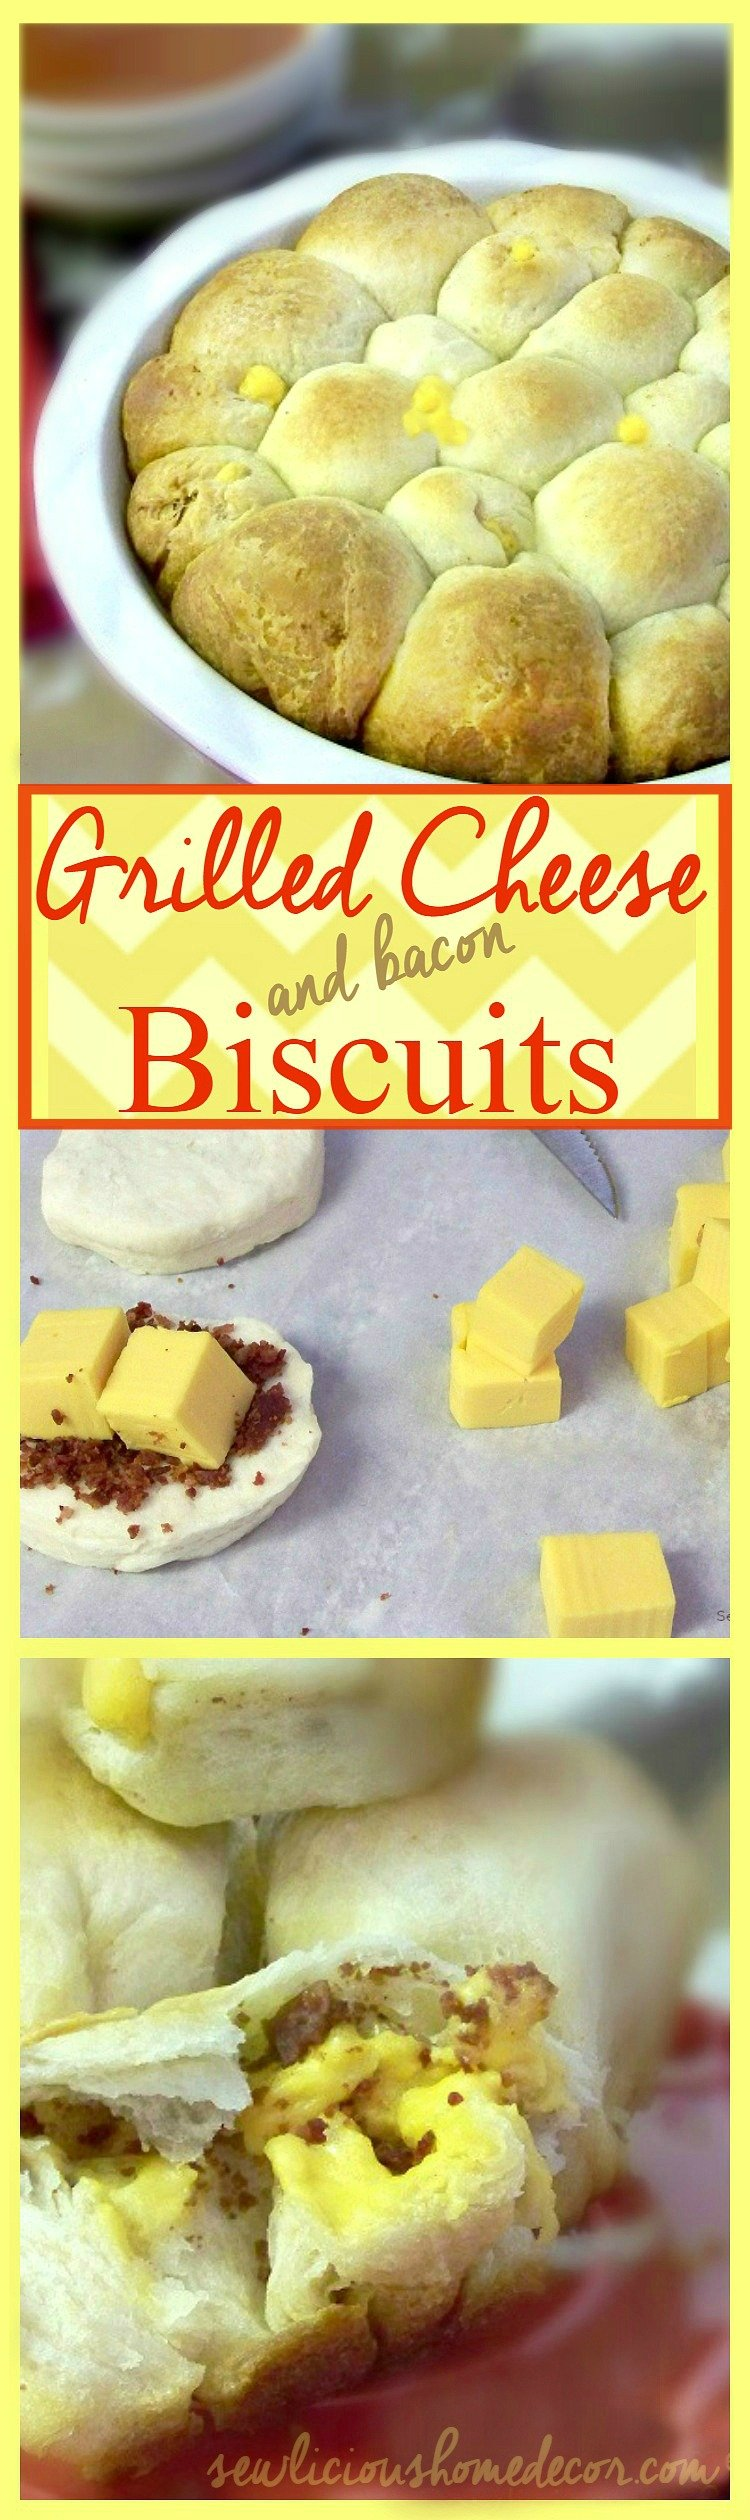 Velveeta Grilled Cheese and Bacon filled Biscuits sewlicioushomedecor.com